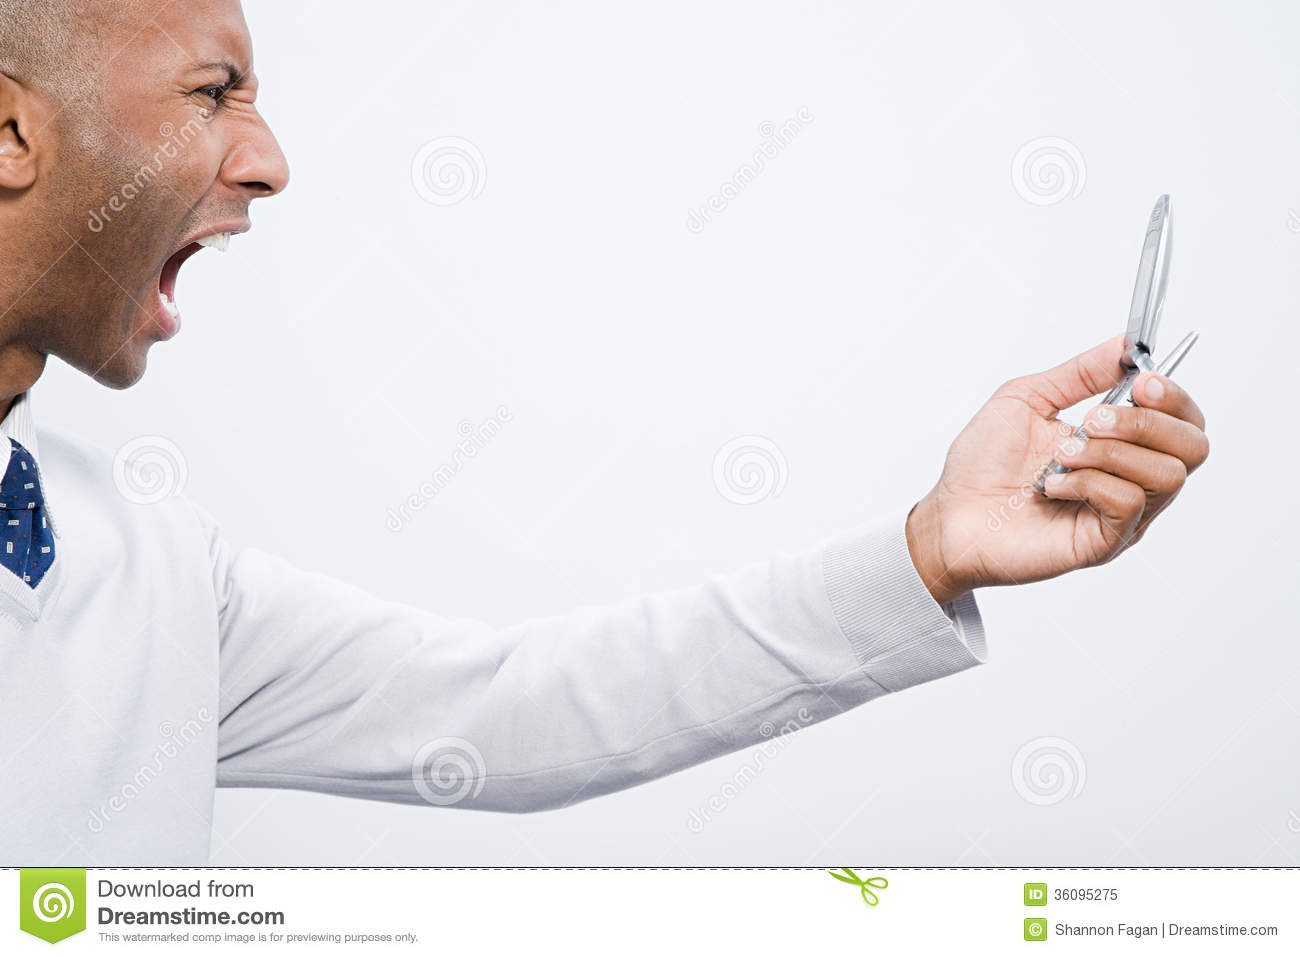 A man shouting at a cell phone